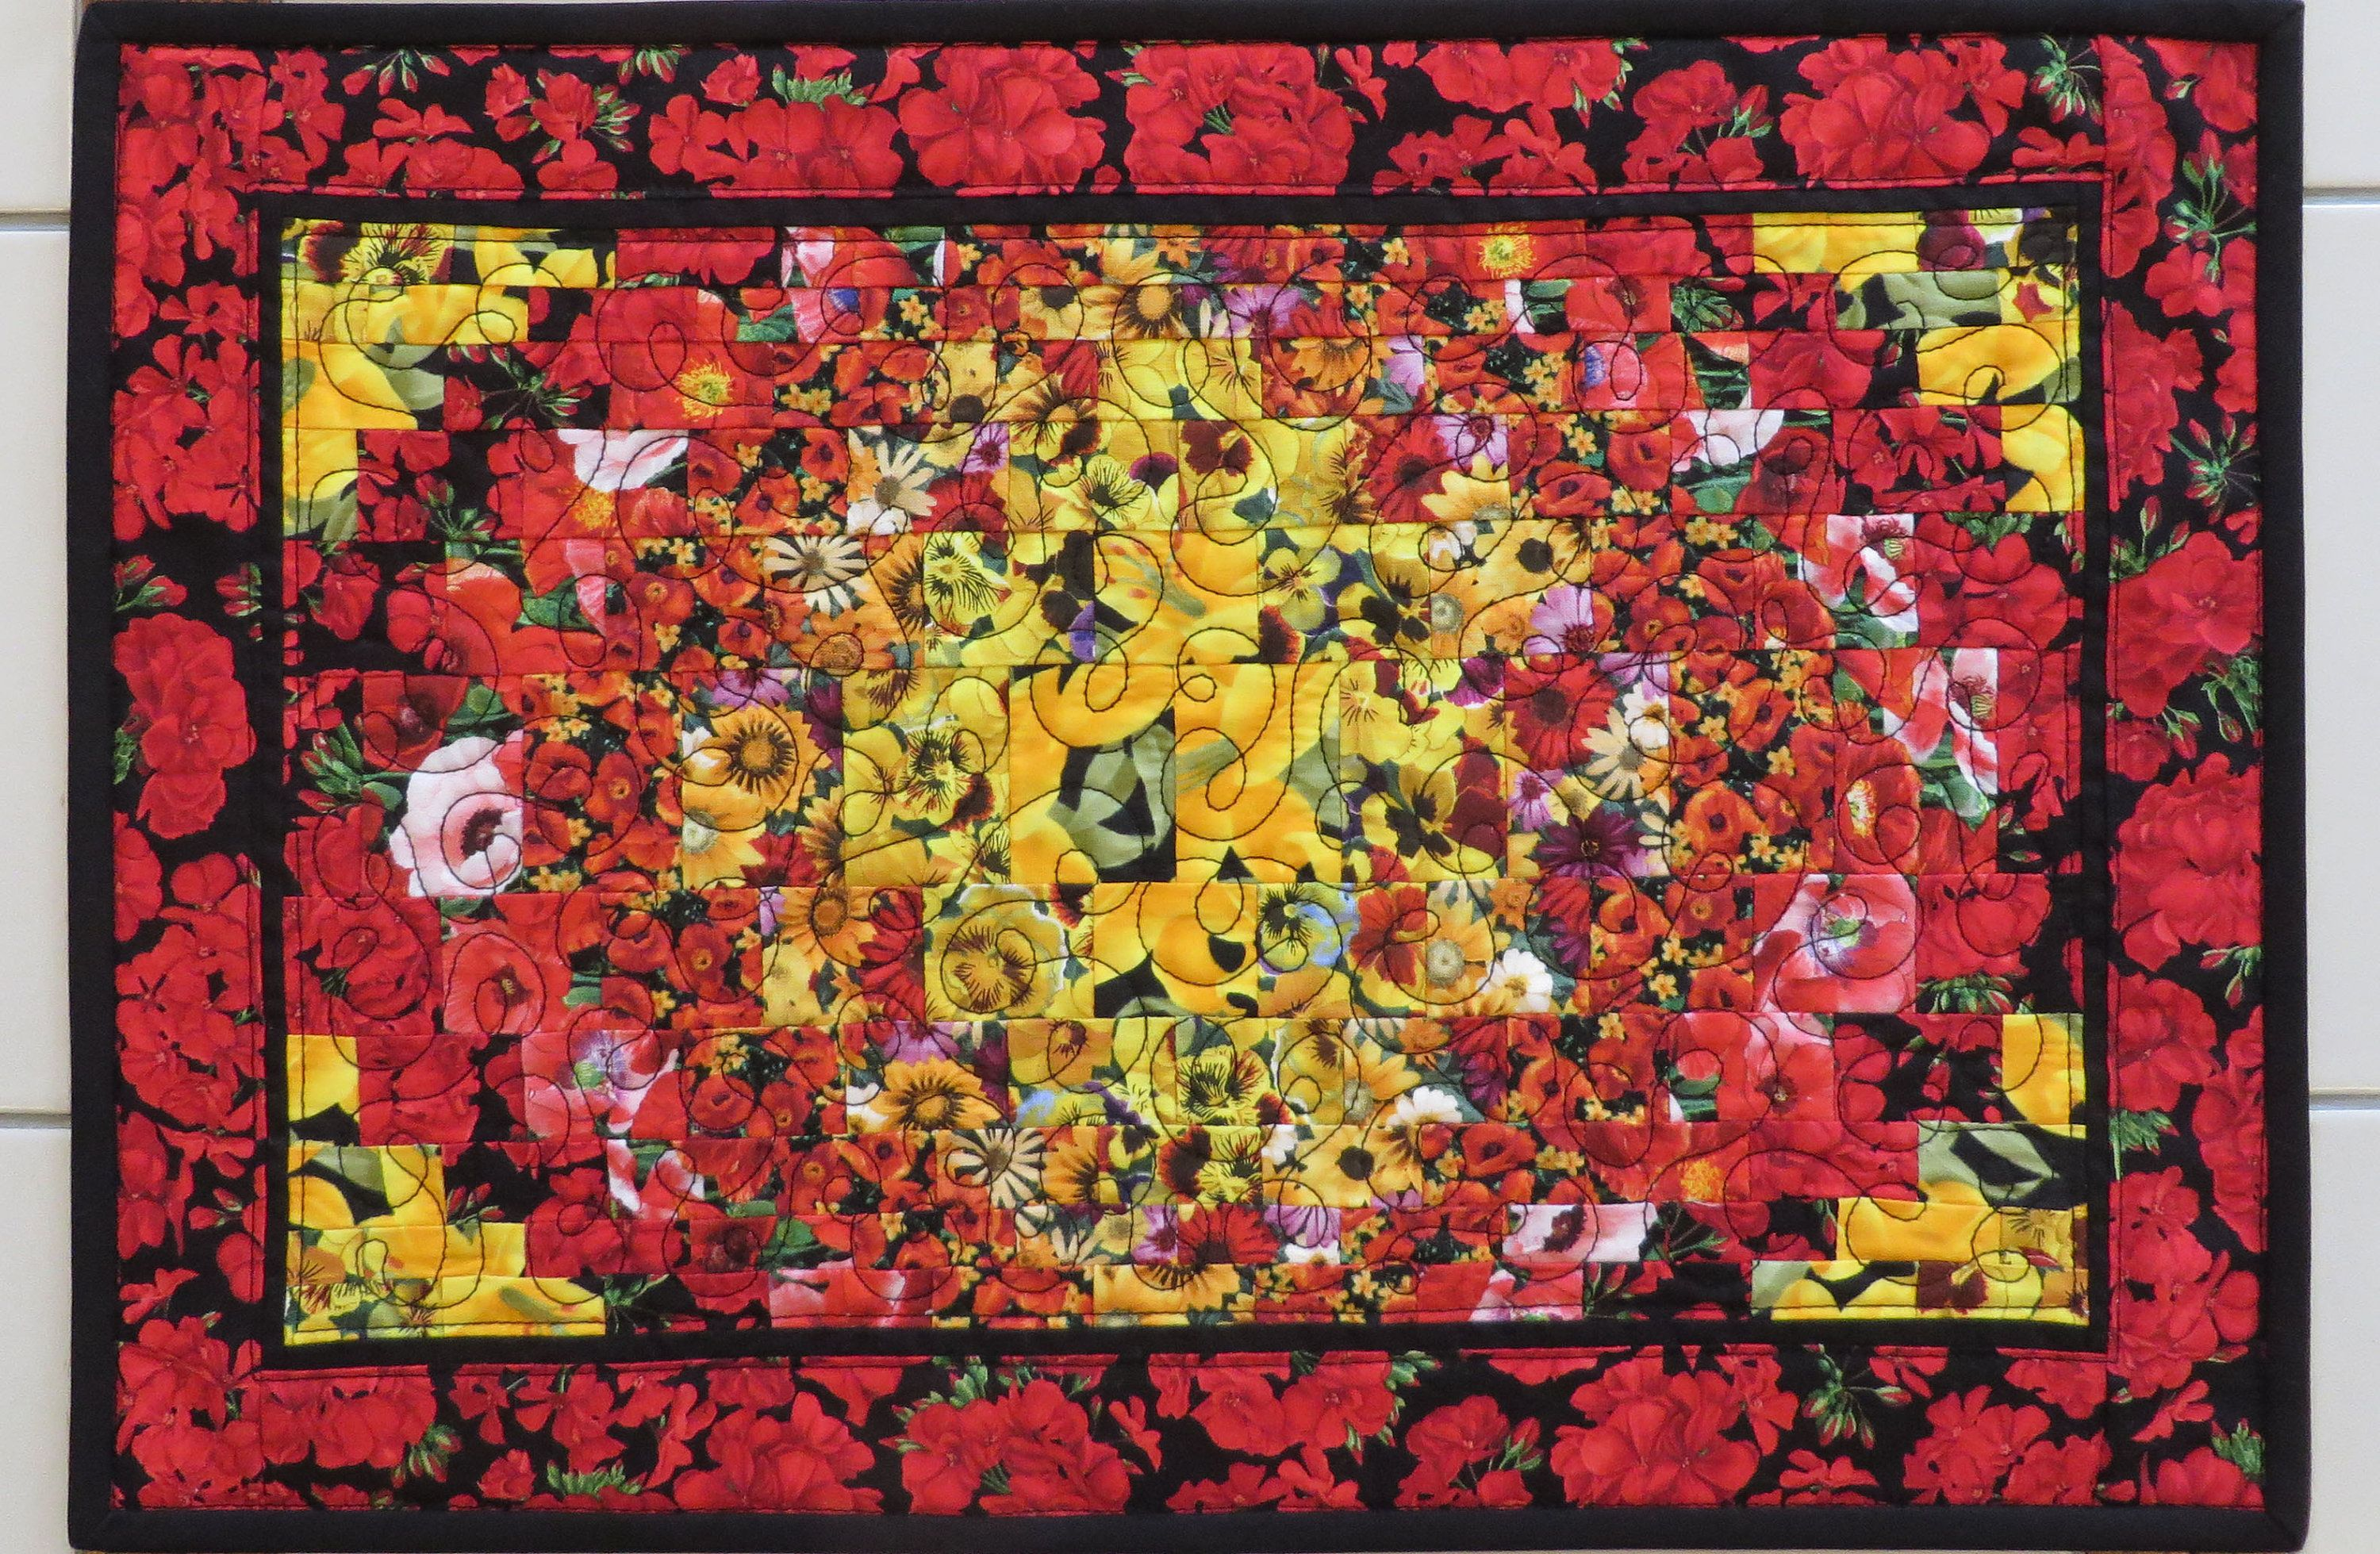 Wall Hanging or Table Topper in Bright and Colorful Batik Fabrics Quilted Patchwork Place Mat